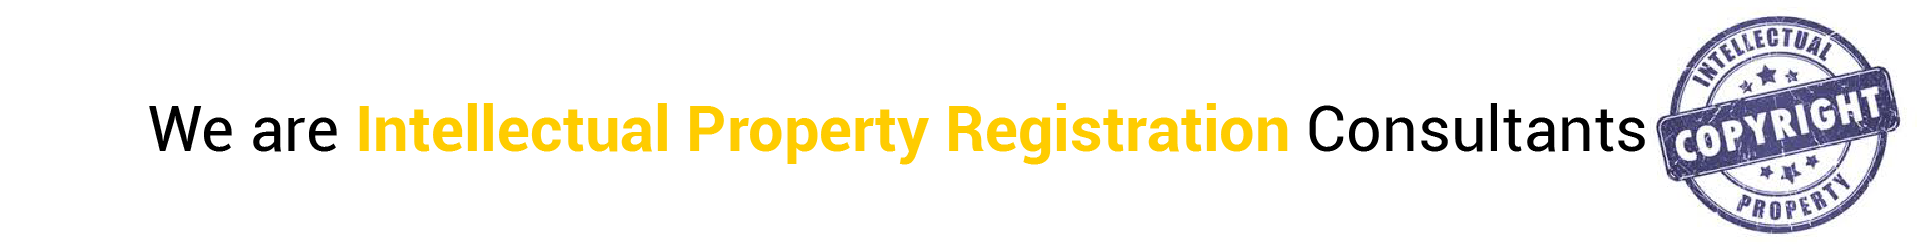 Intellectual Property Registration Consultants